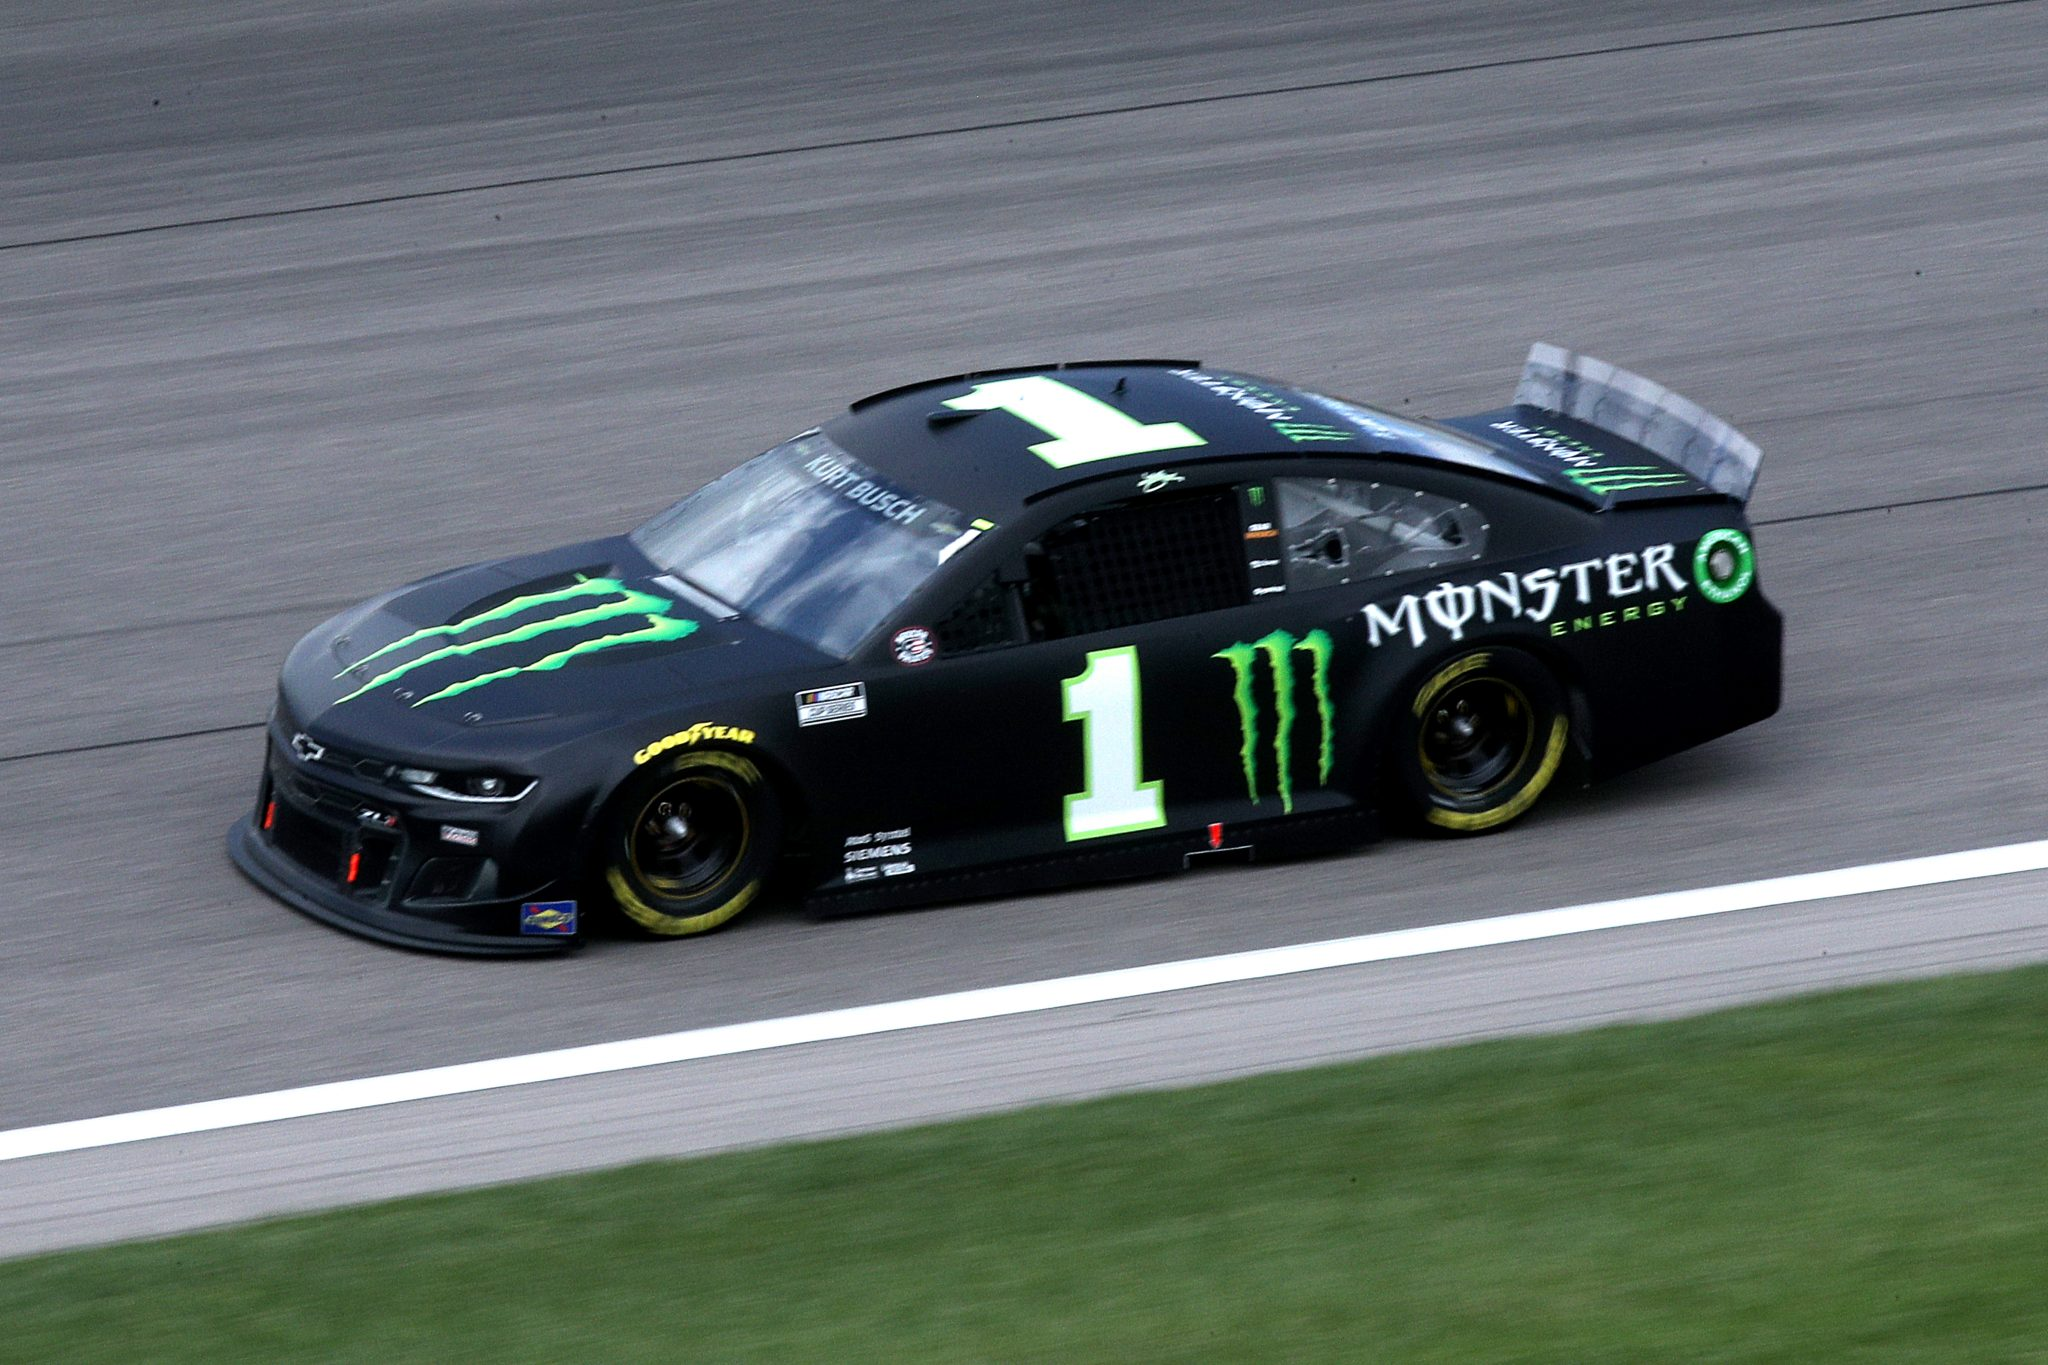 KANSAS CITY, KANSAS - MAY 02: Kurt Busch, driver of the #1 Monster Energy Chevrolet, drives during the NASCAR Cup Series Buschy McBusch Race 400 at Kansas Speedway on May 02, 2021 in Kansas City, Kansas. (Photo by Sean Gardner/Getty Images) | Getty Images